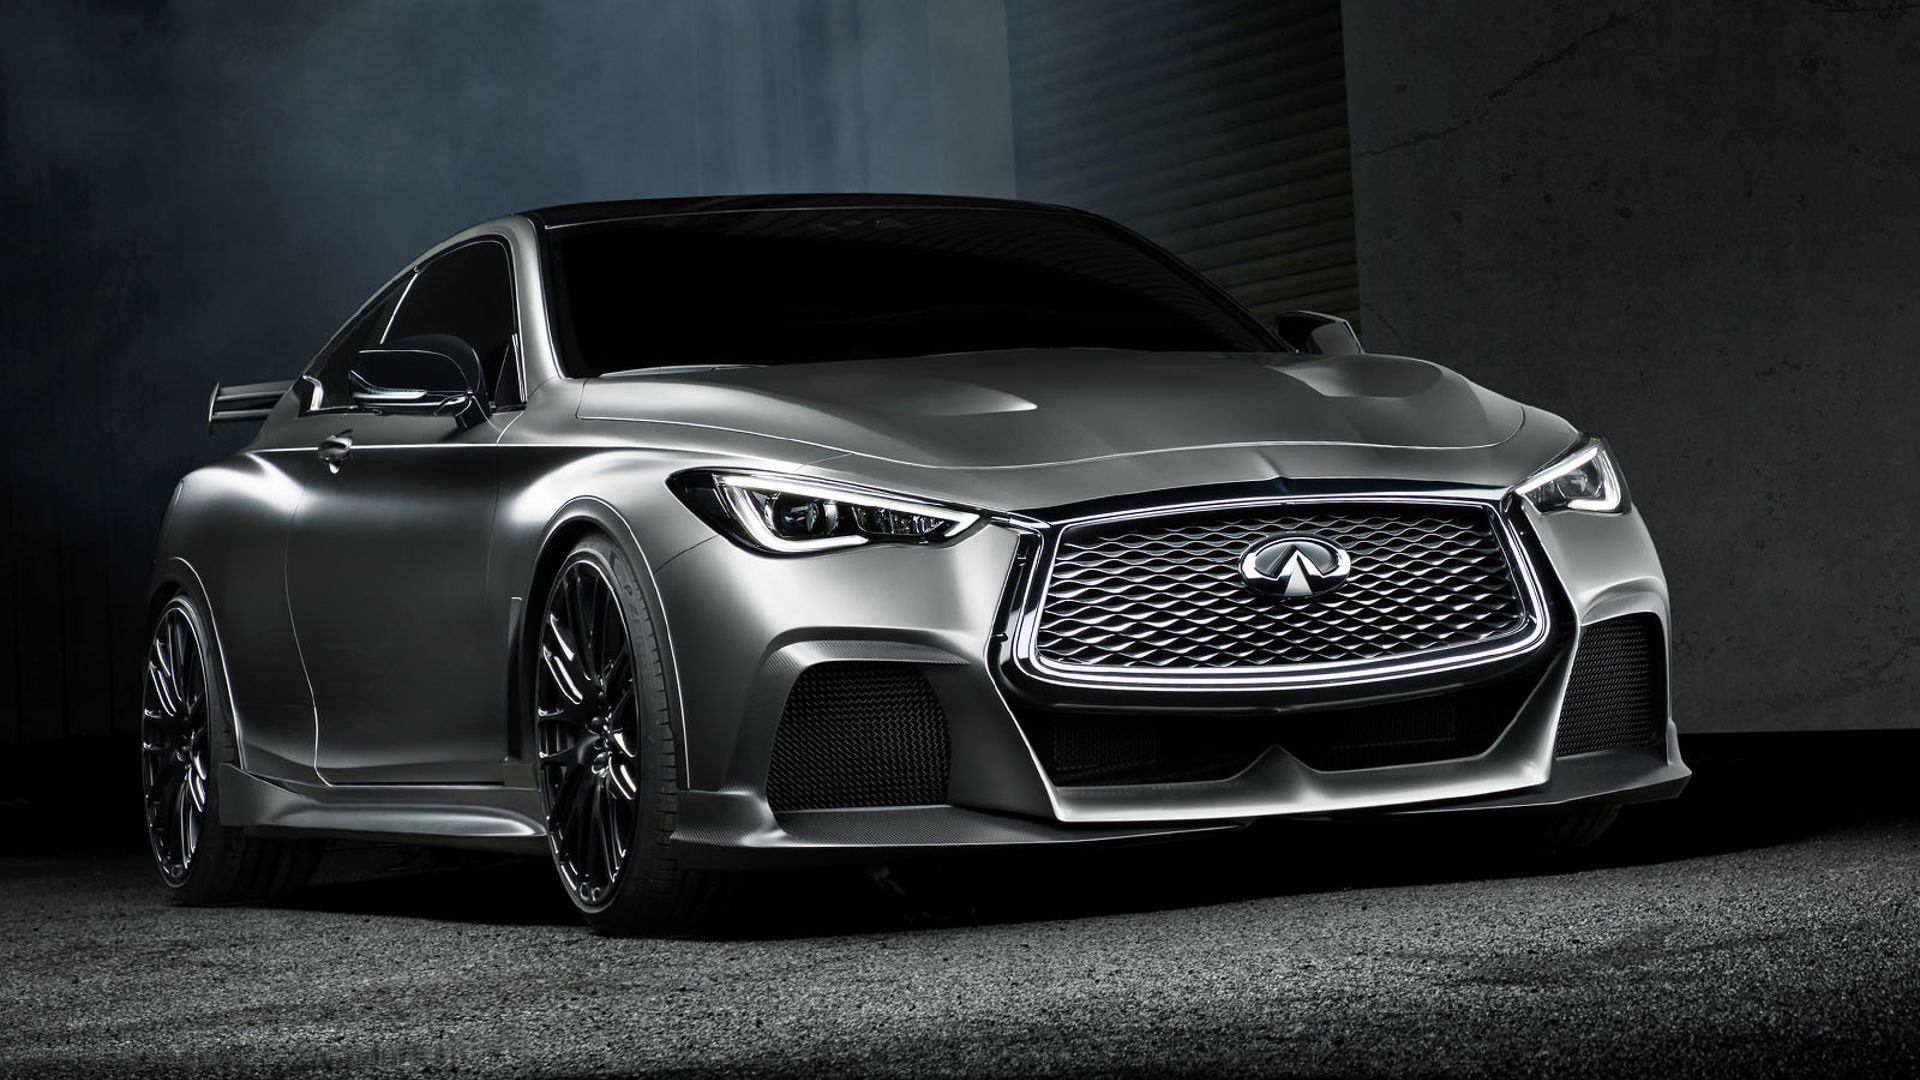 32 The 2020 Infiniti Q60 Research New